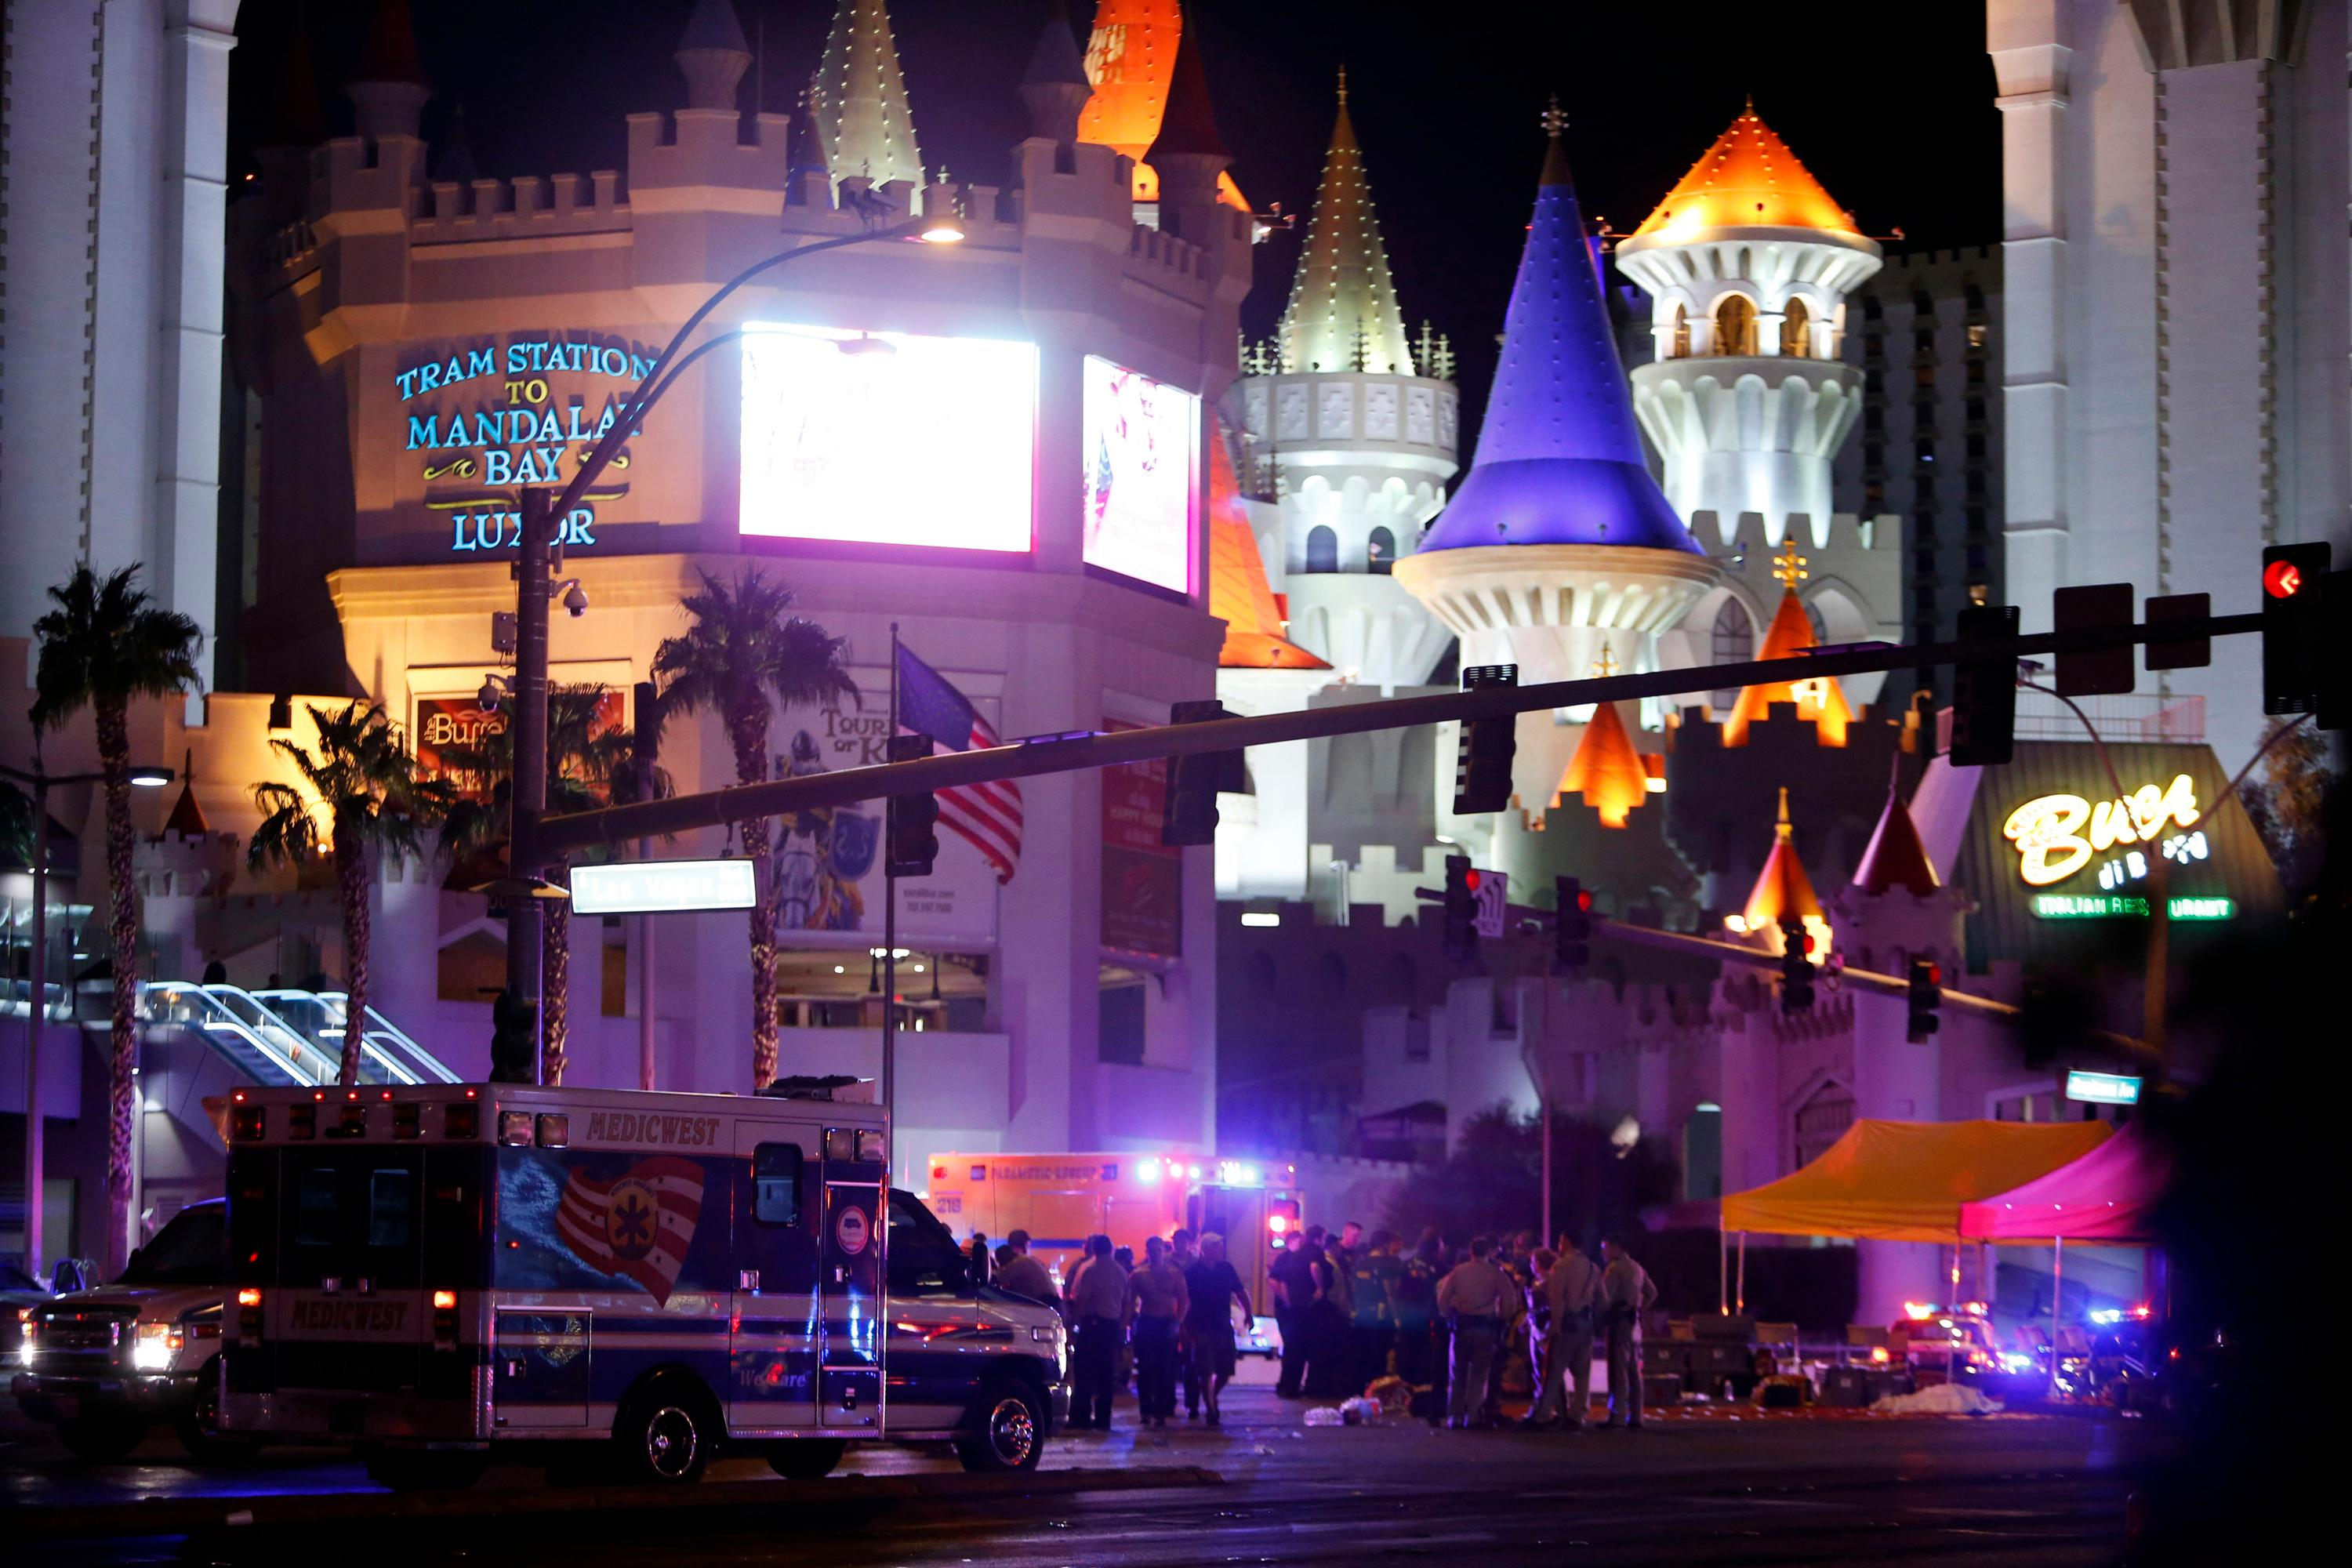 Las Vegas Metro Police and medical workers gather at an intersection after a mass shooting at a music festival on the Las Vegas Strip on Sunday, Oct. 1, 2017. (Steve Marcus/Las Vegas Sun via AP)